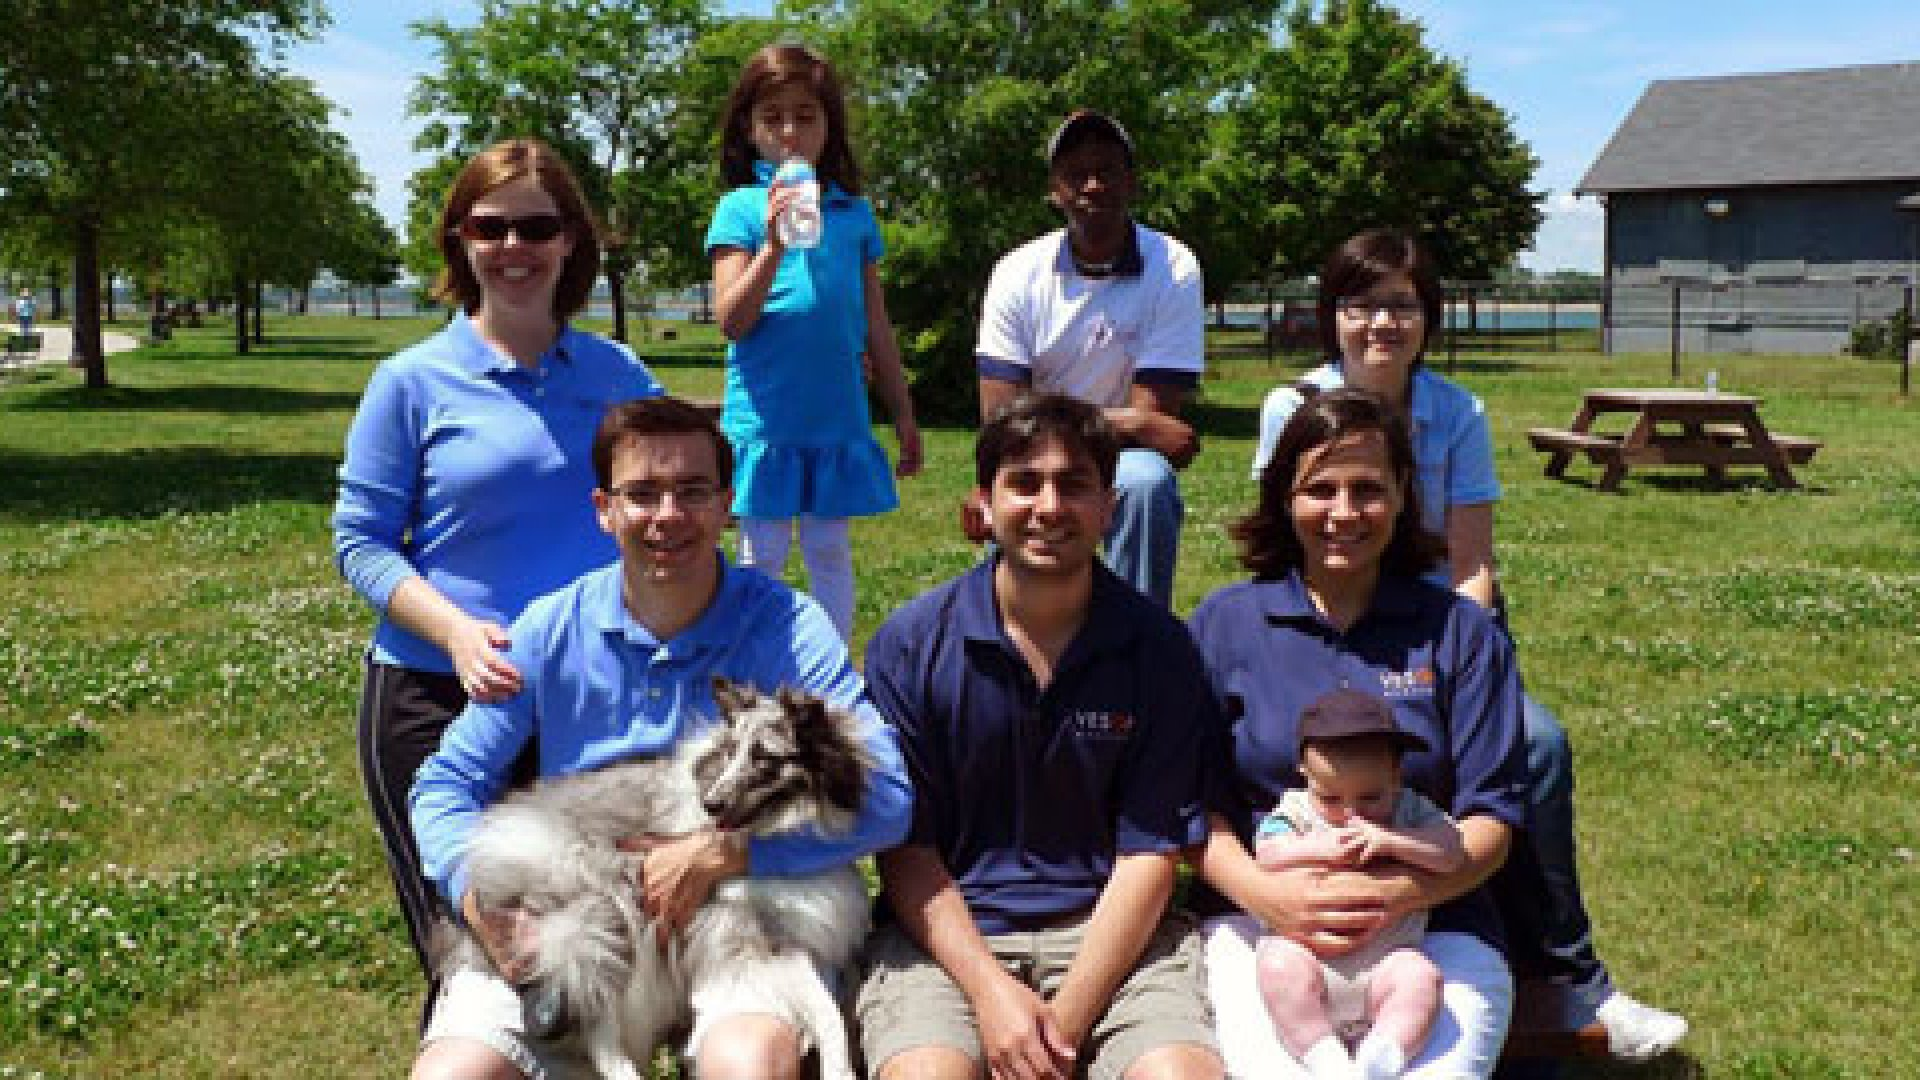 Employees and executives come together to support their favorite local charities, such as Boston's annual Lupus Walk. The company organized a team for the 2009 walk (pictured above) and plan to participate again this year.